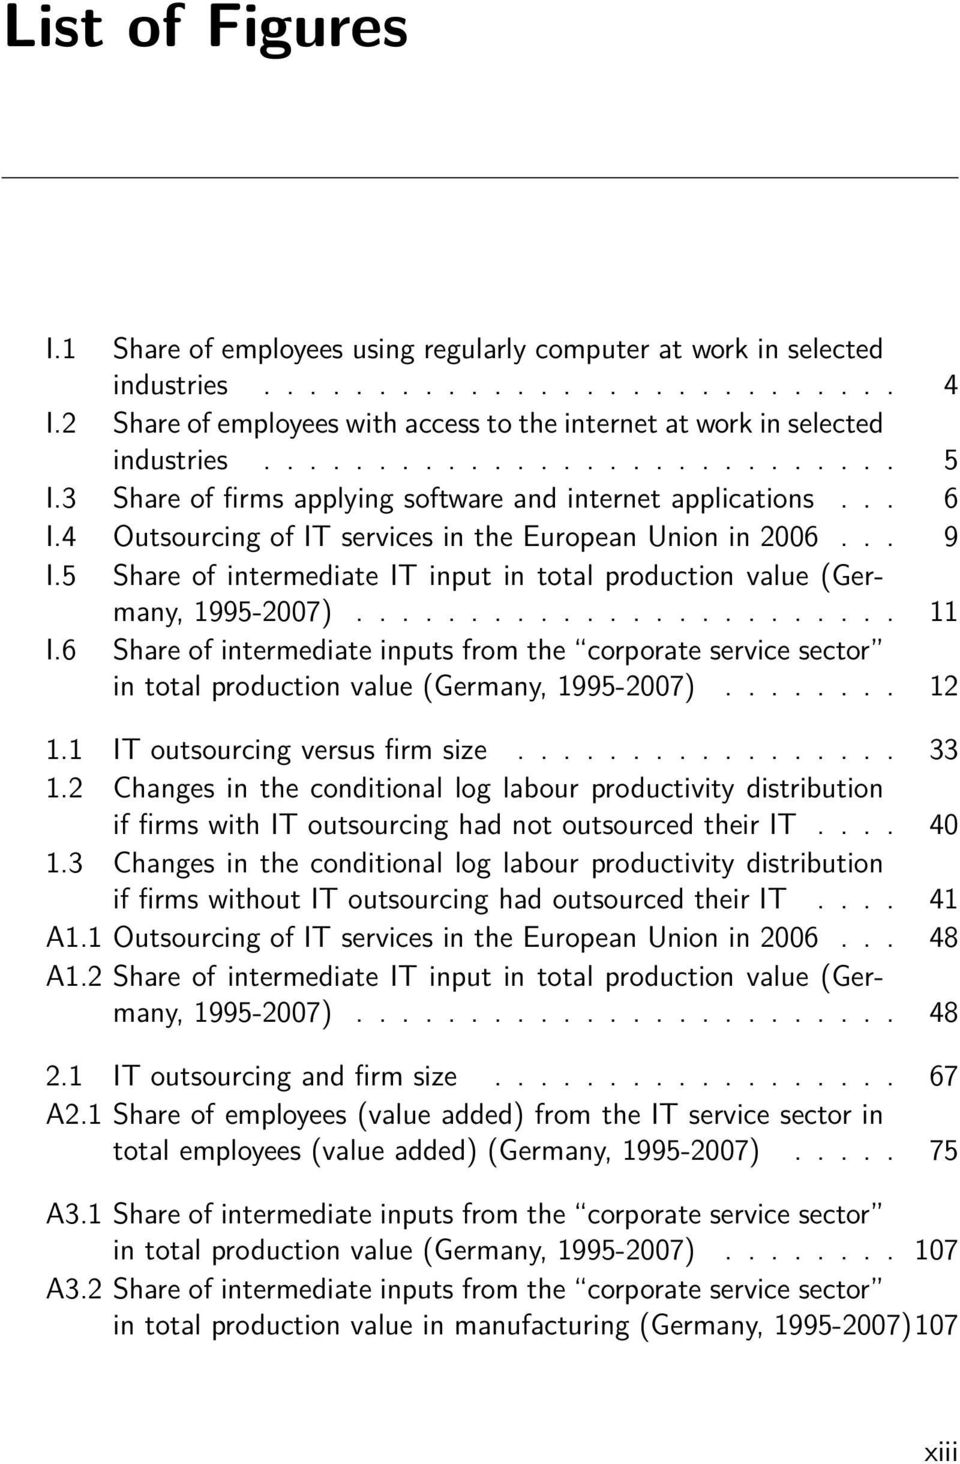 4 Outsourcing of IT services in the European Union in 2006... 9 I.5 Share of intermediate IT input in total production value (Germany, 1995-2007)........................ 11 I.